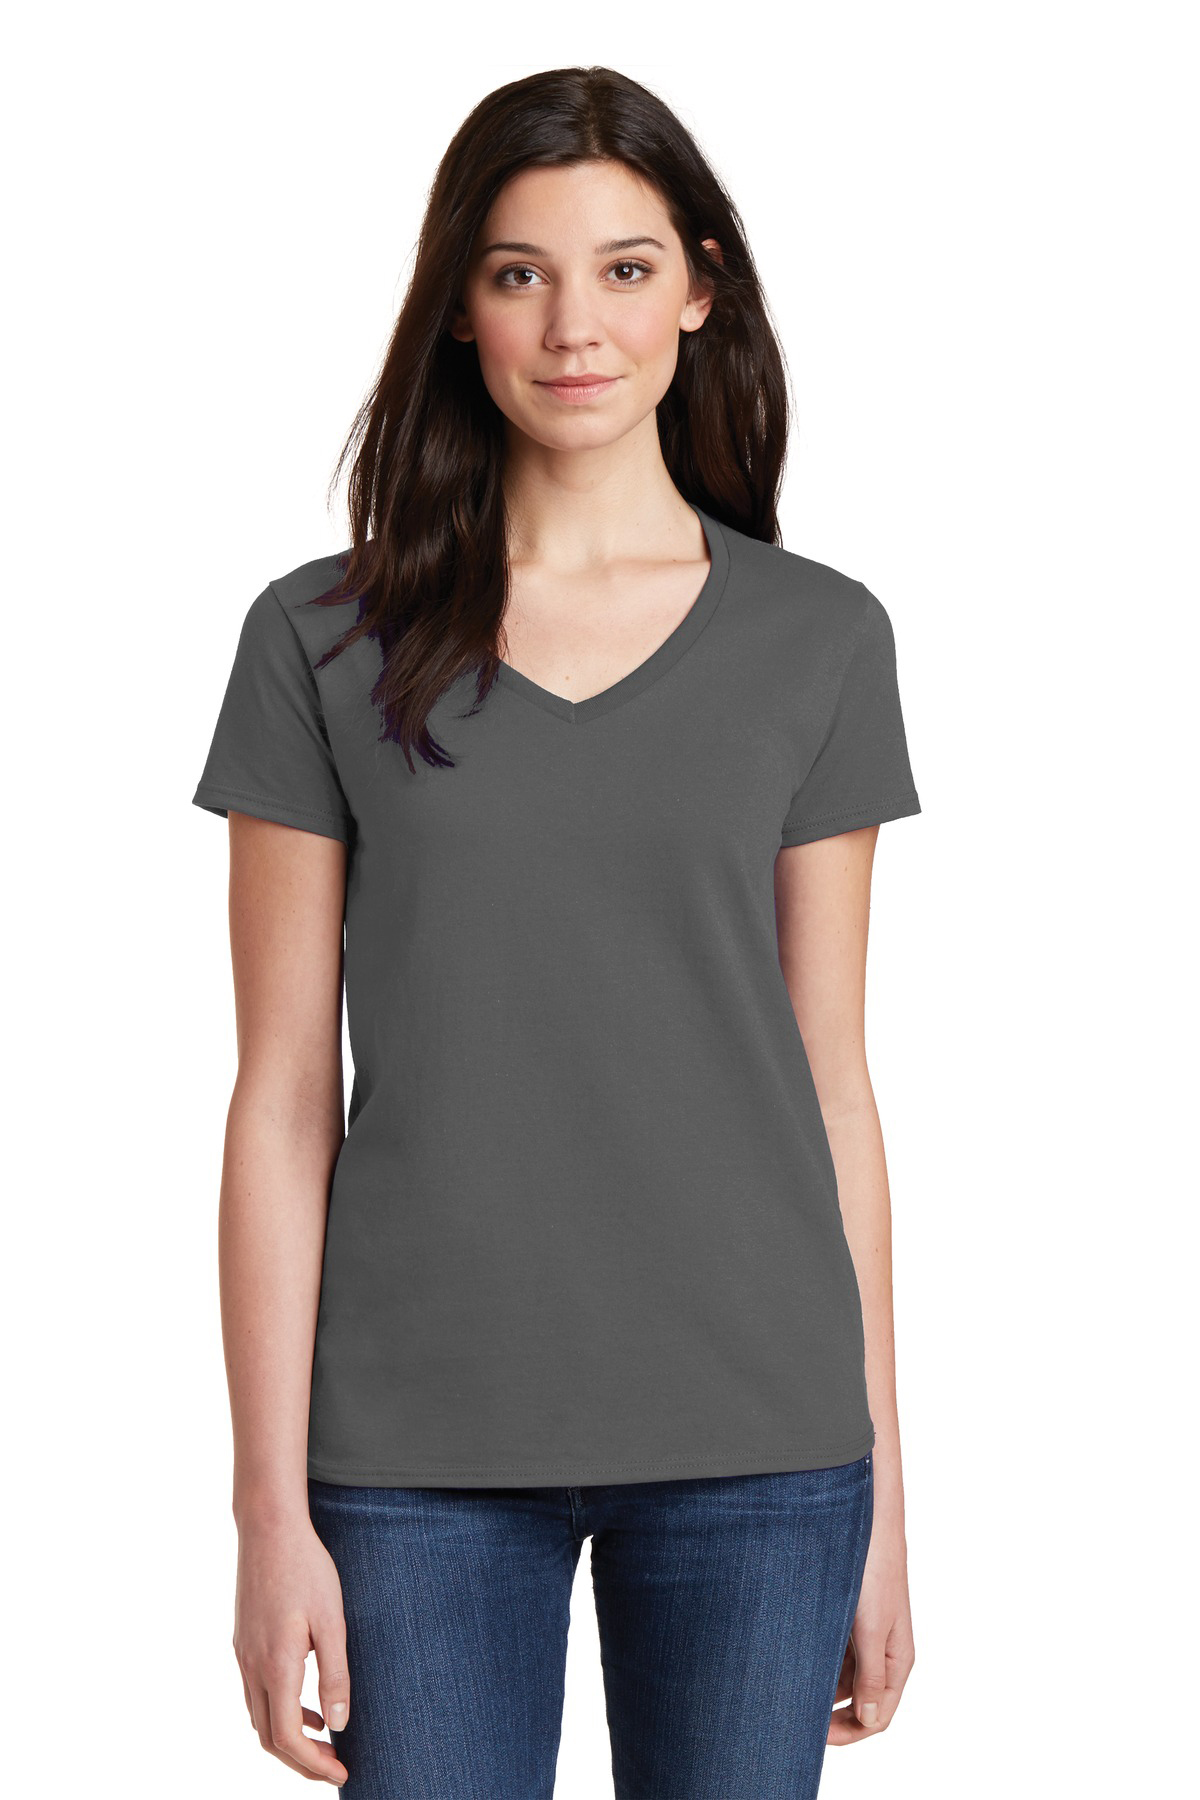 fe6ce49337 Gildan® Ladies Heavy Cotton™ 100% Cotton V-Neck T-Shirt. Brand Logo